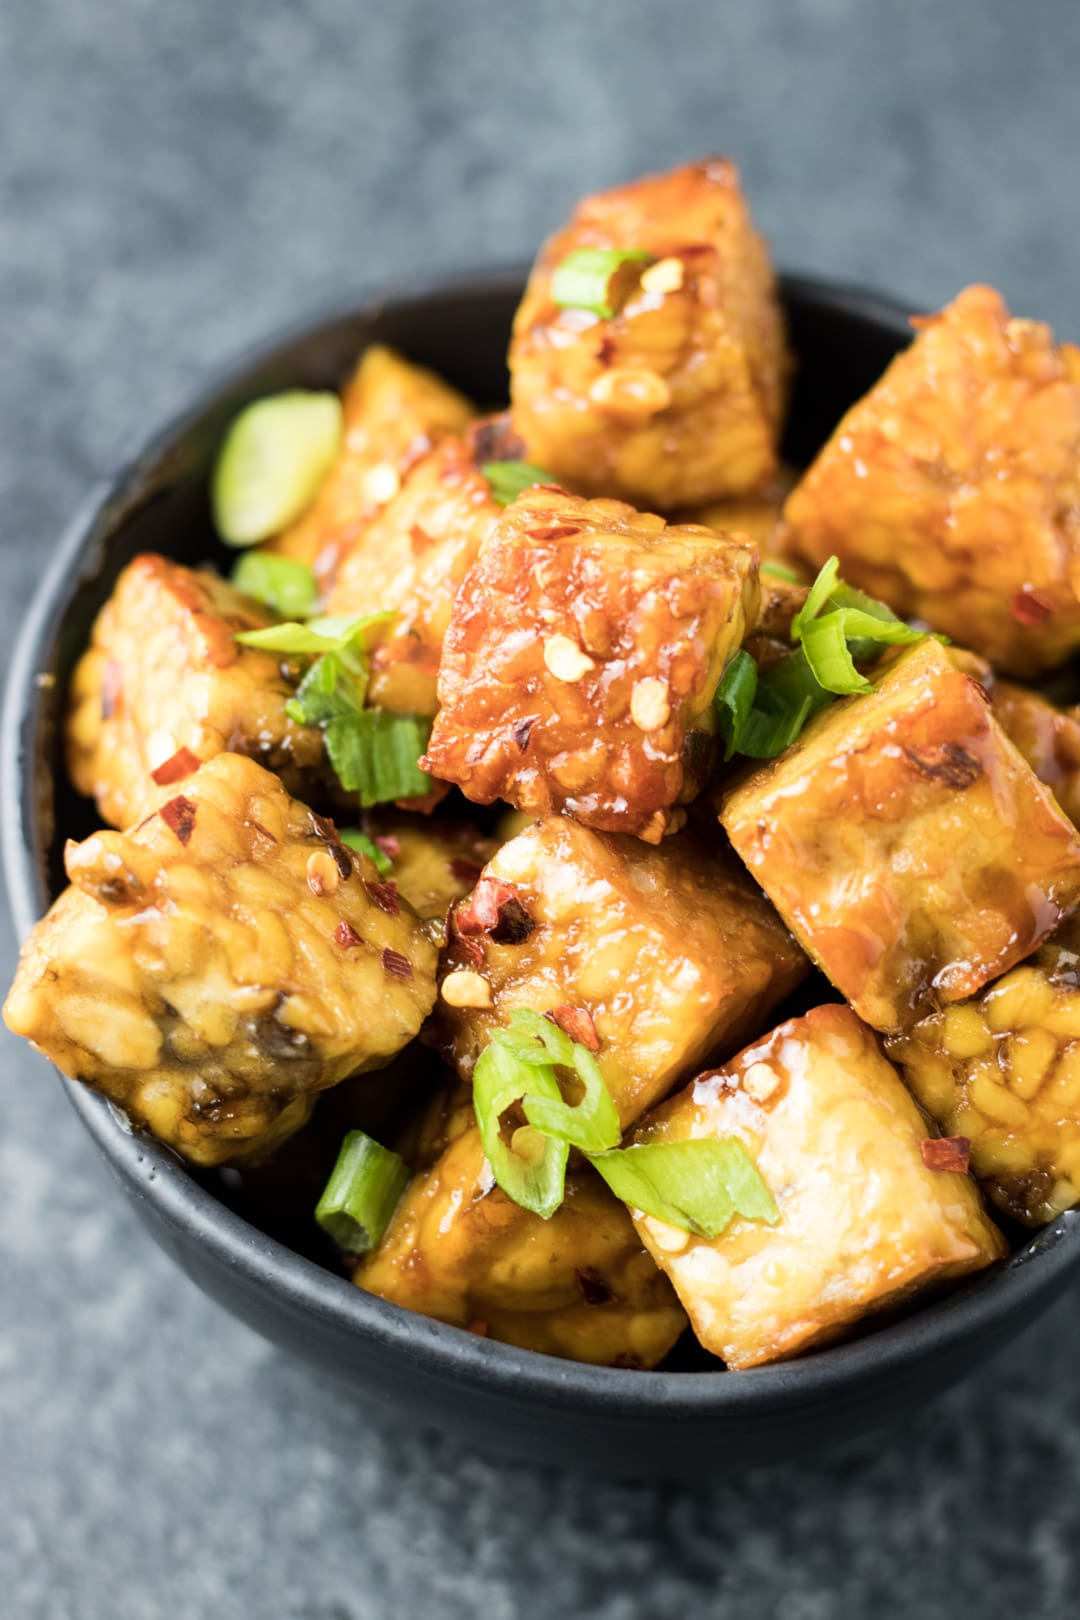 Browned tempeh tossed in a maple-soy glaze and topped with sliced green onions and red pepper flakes.